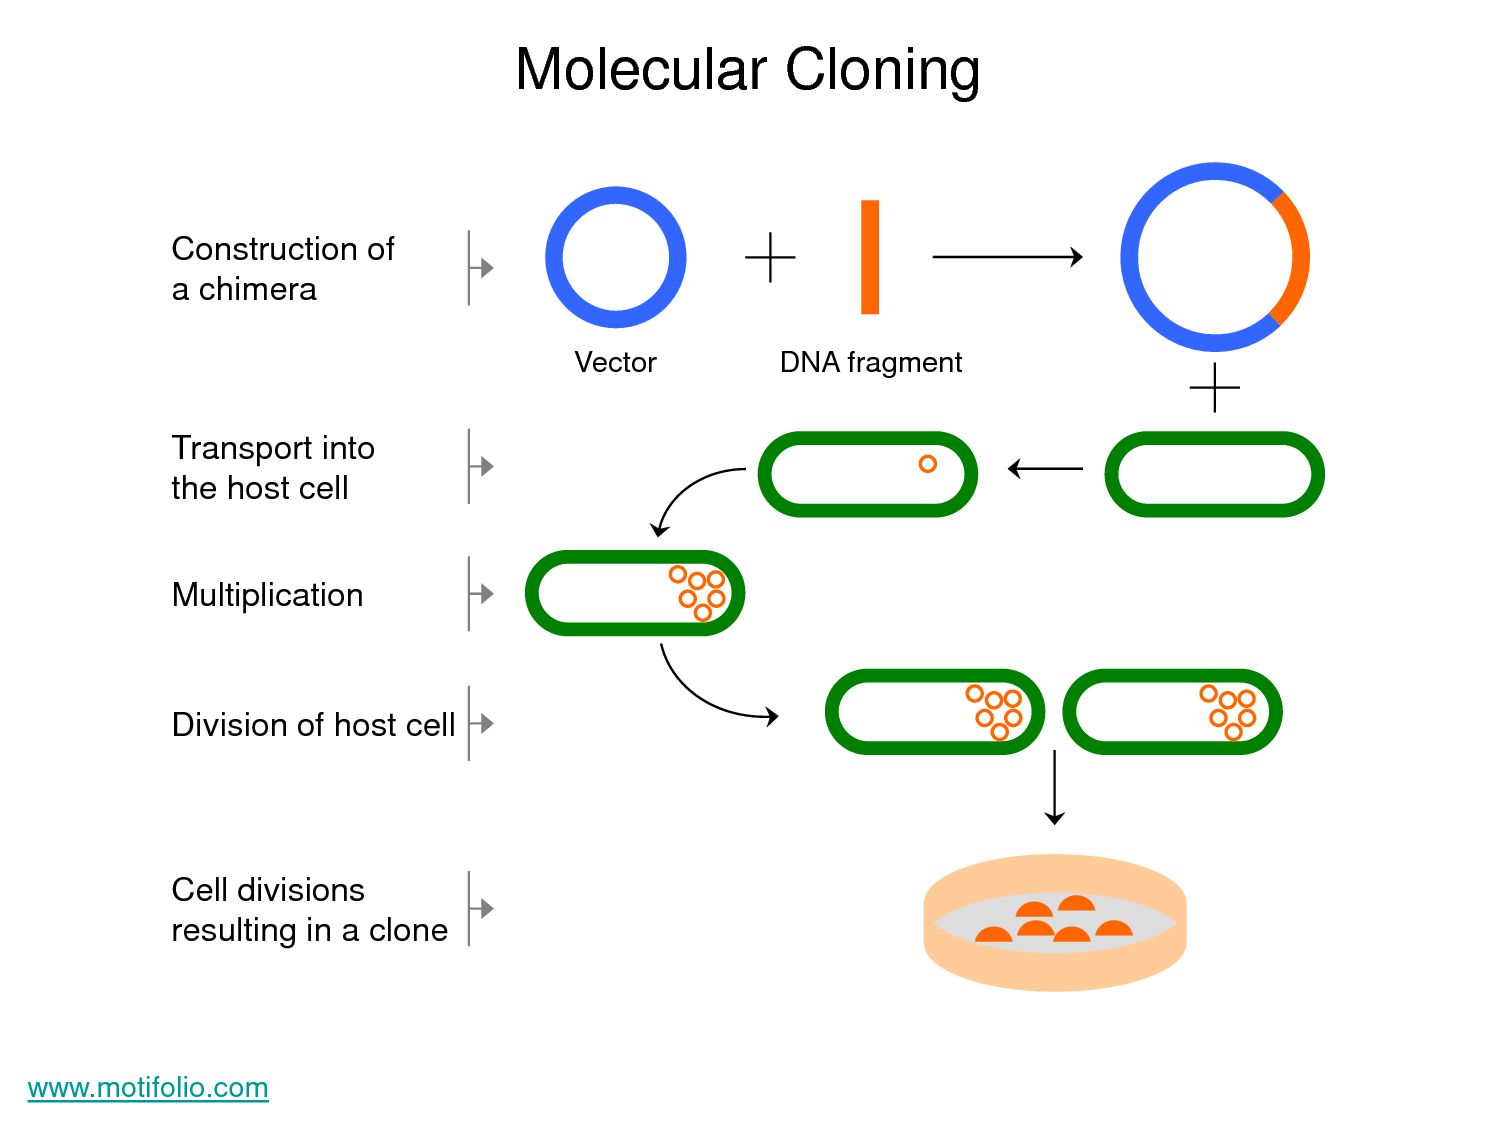 dna cloning Definition, purpose, and basic steps of dna cloning.